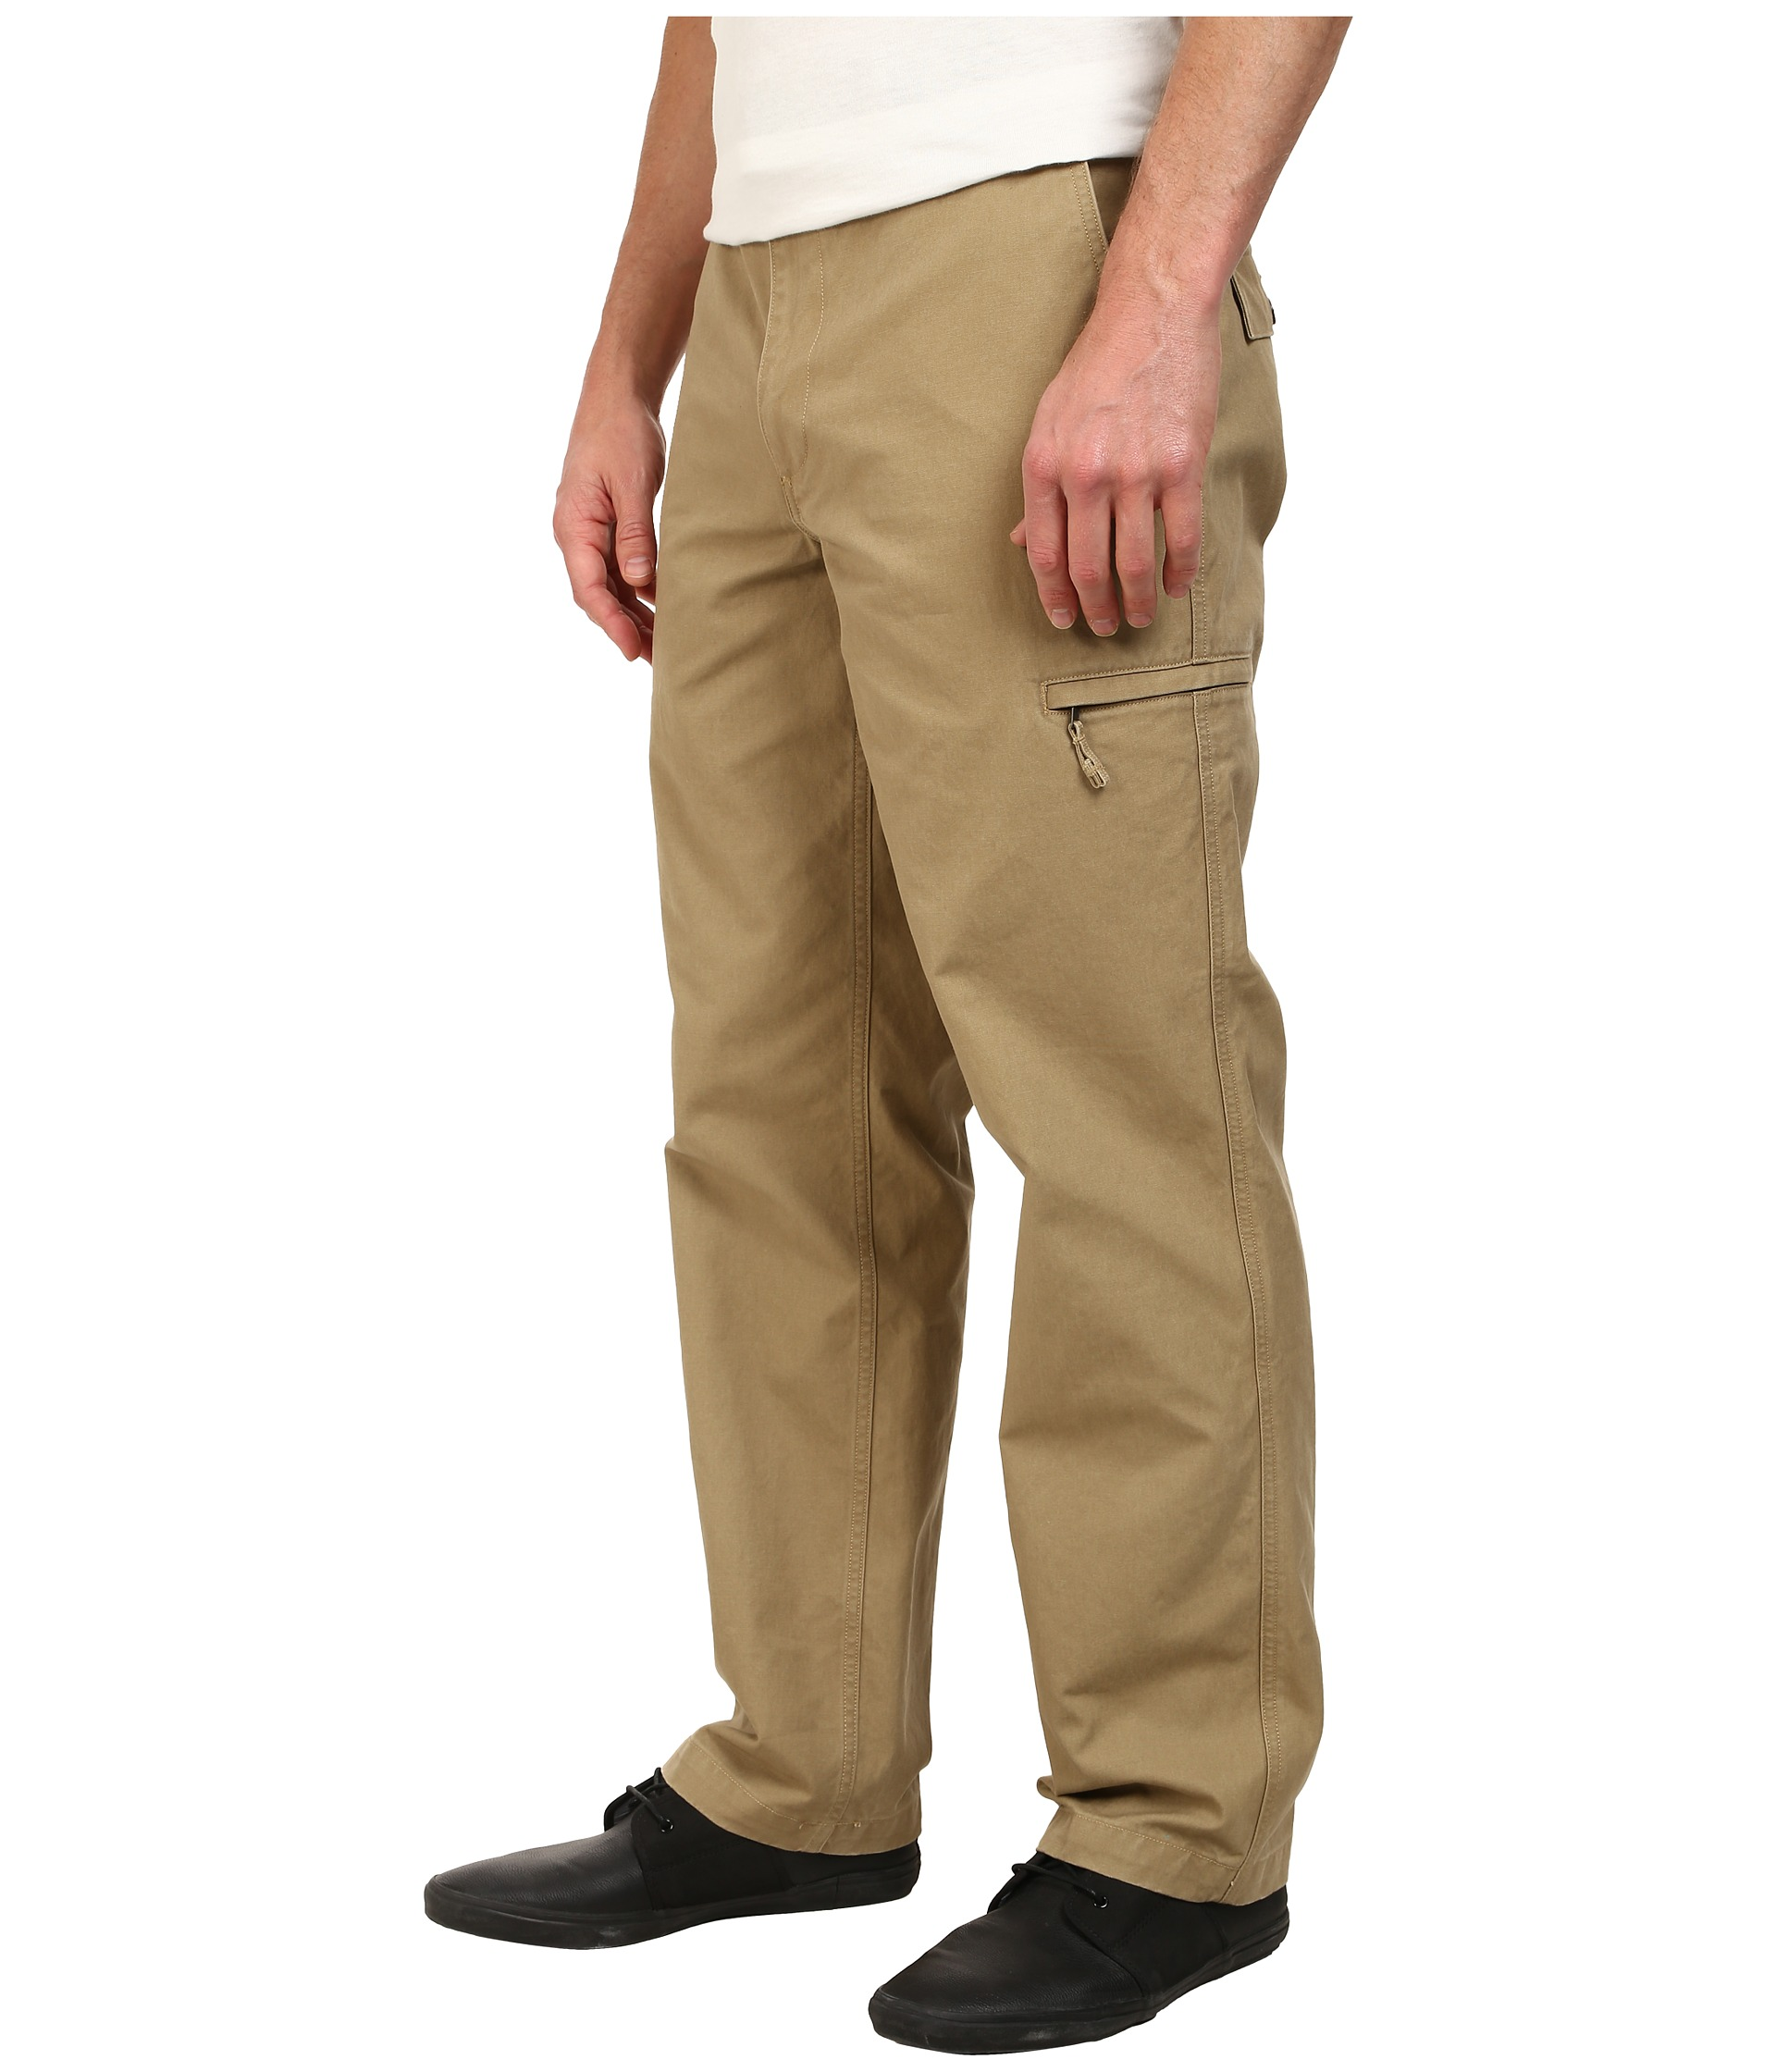 Dockers Men's D3 Crossover Cargo Pants at Zappos.com